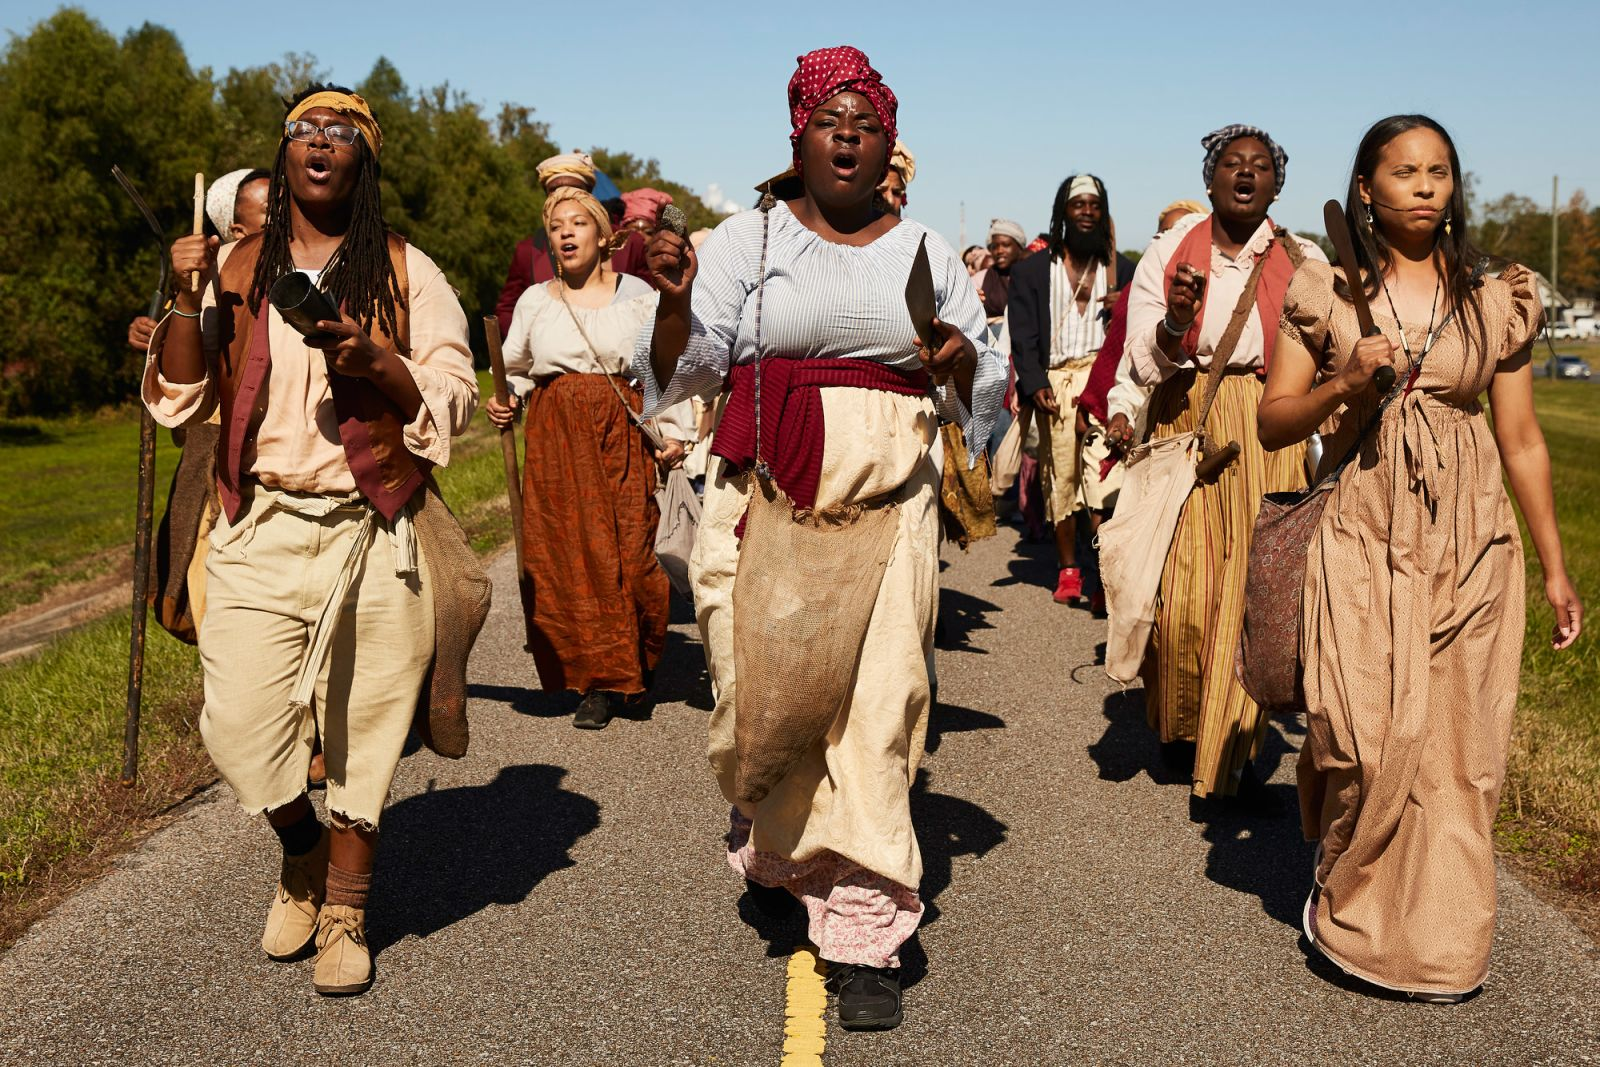 Reenacting the largest slave revolt in US history